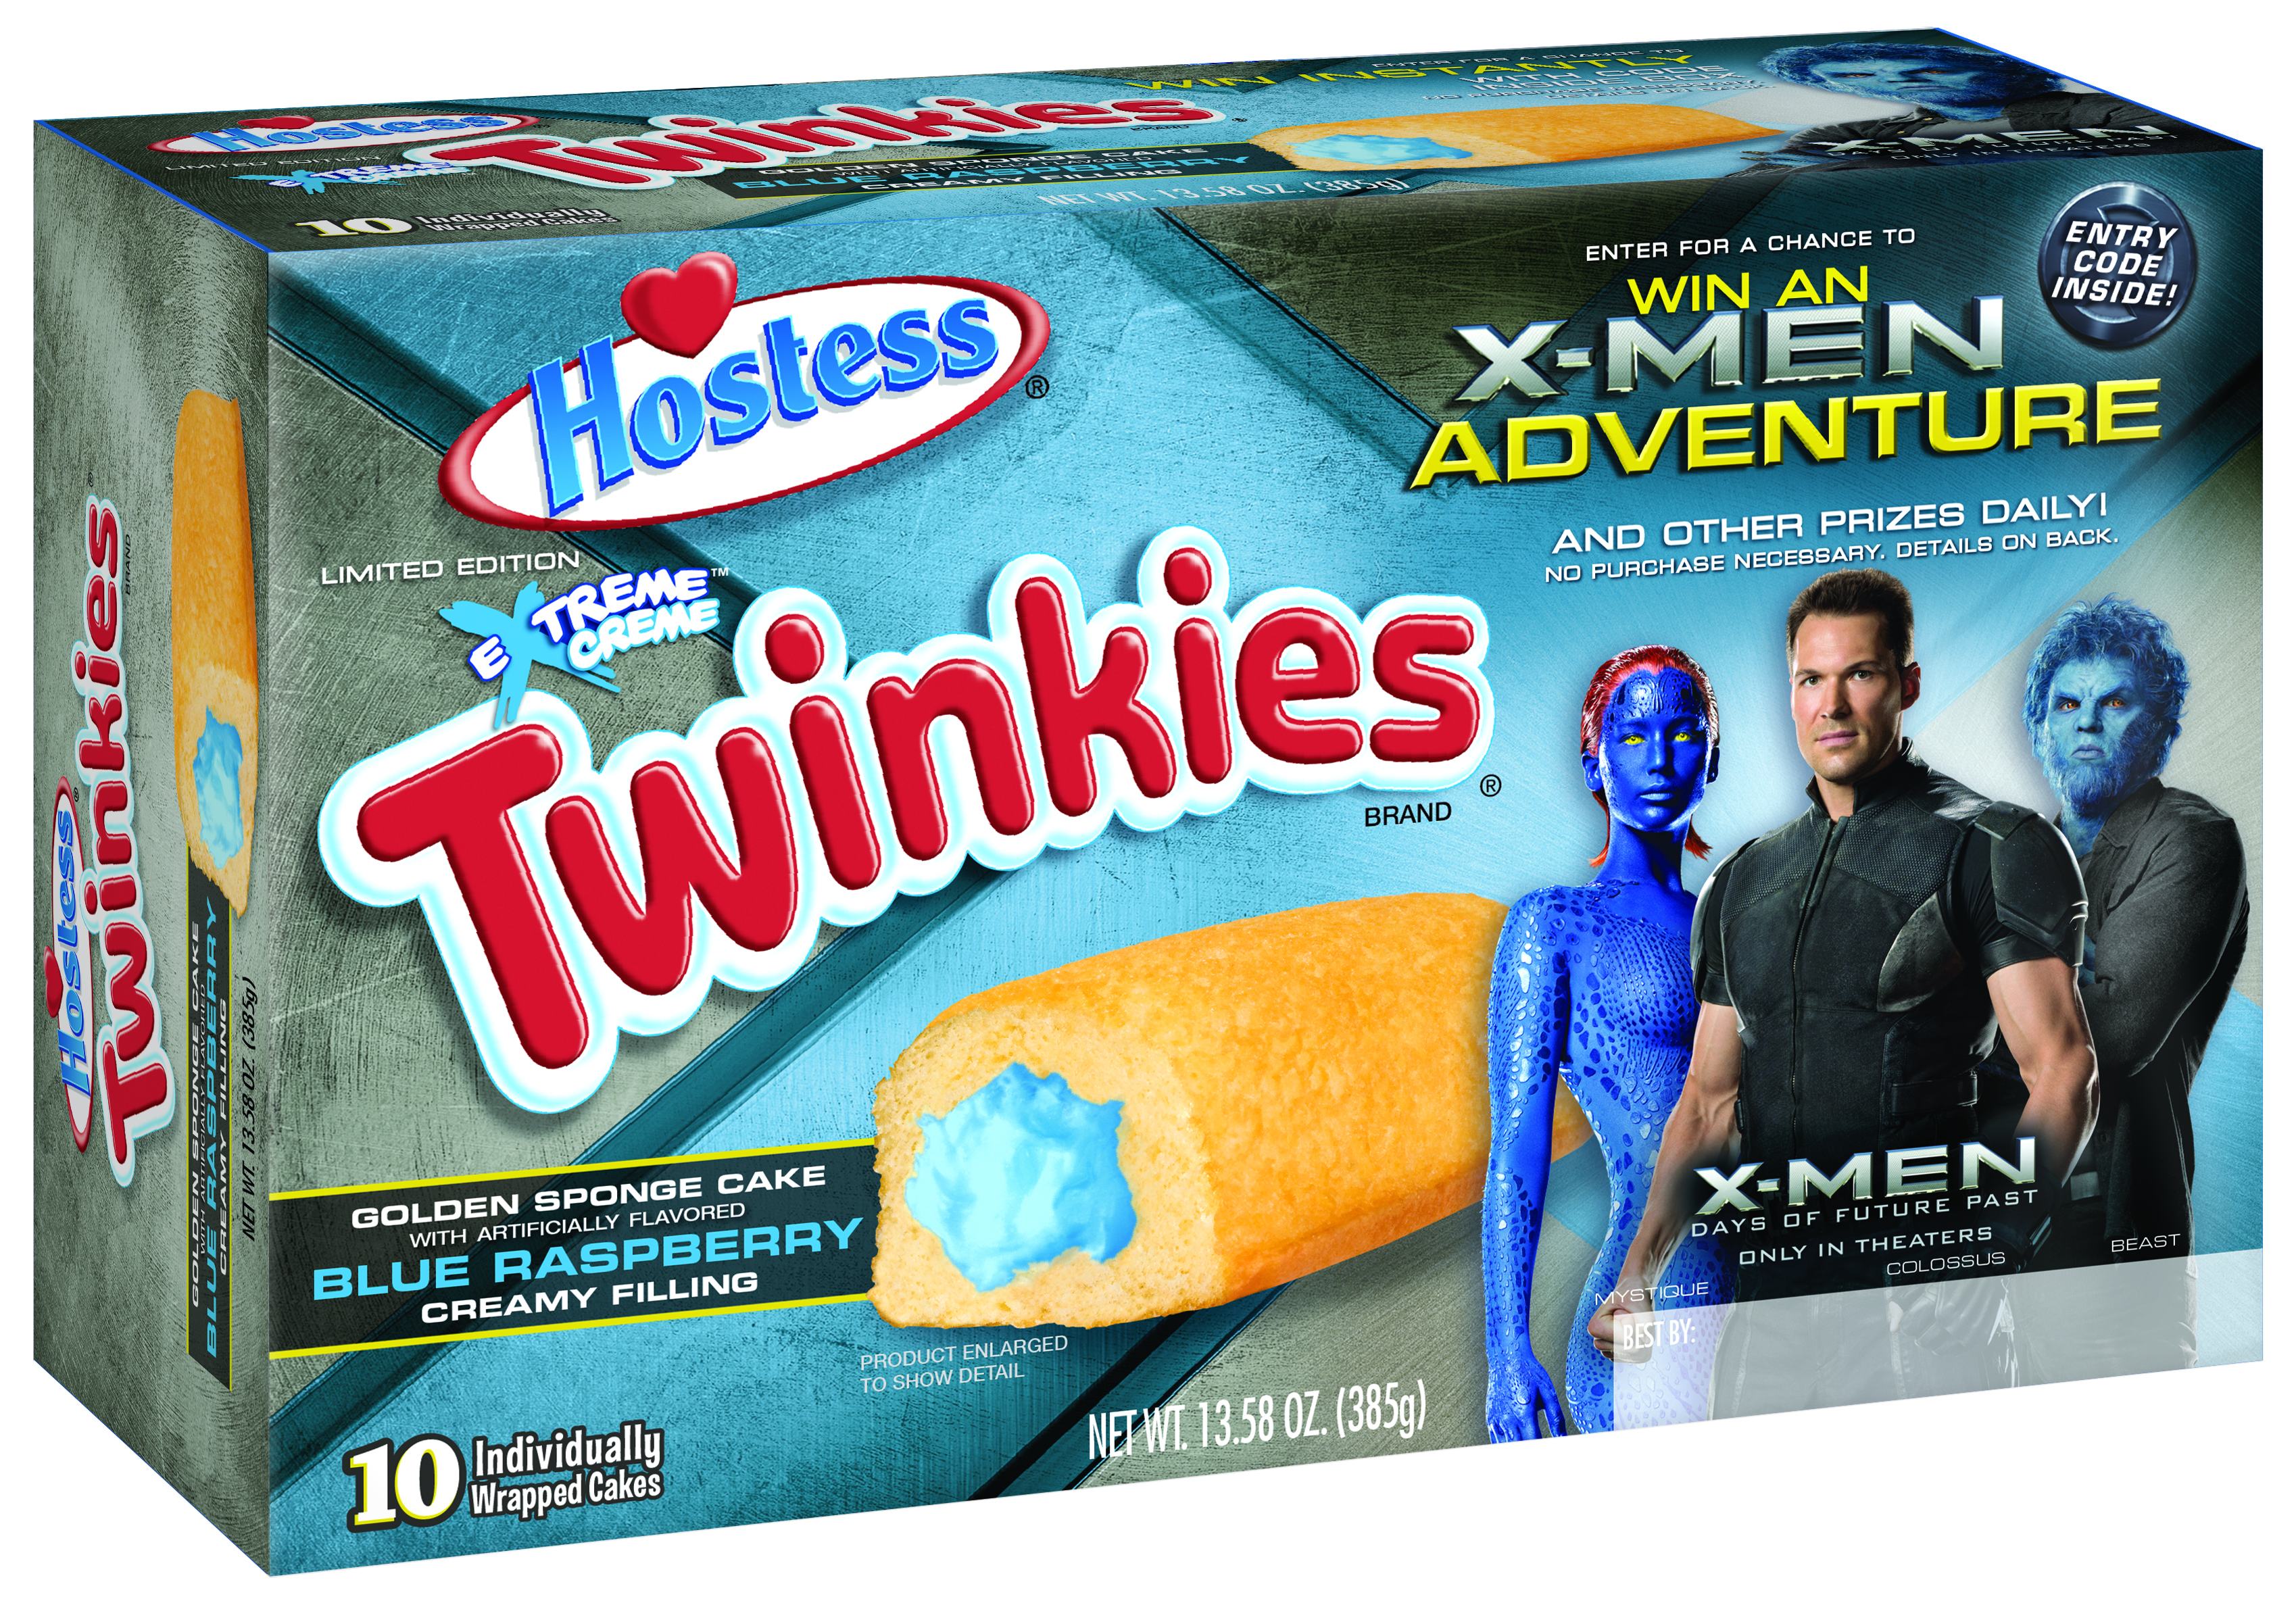 520390_HST_TWINKIES_MP_BlueRasp_PROMO-XMEN_3-14_HR